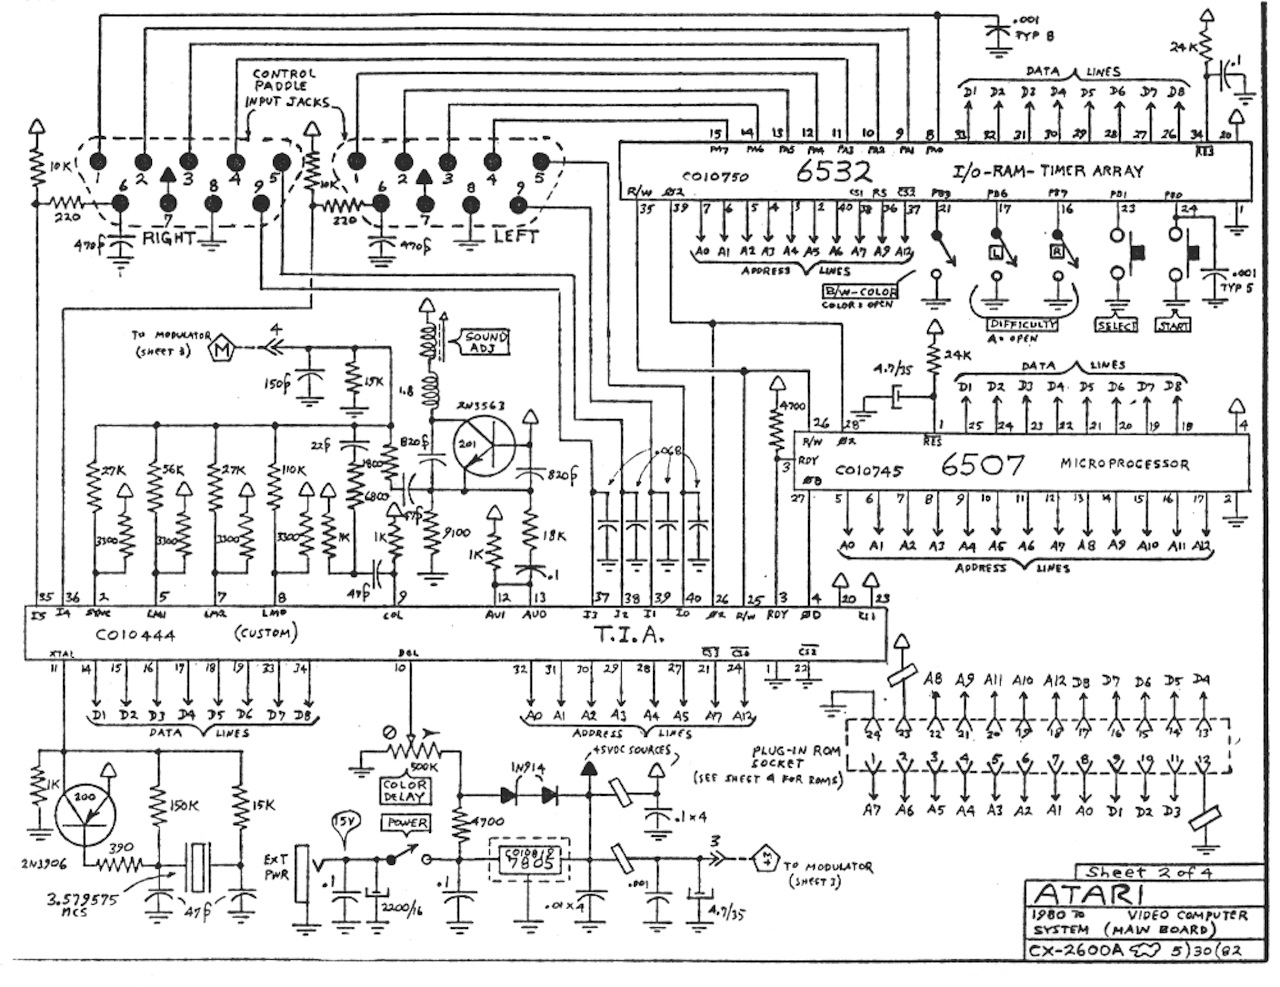 atari wiring diagram   20 wiring diagram images